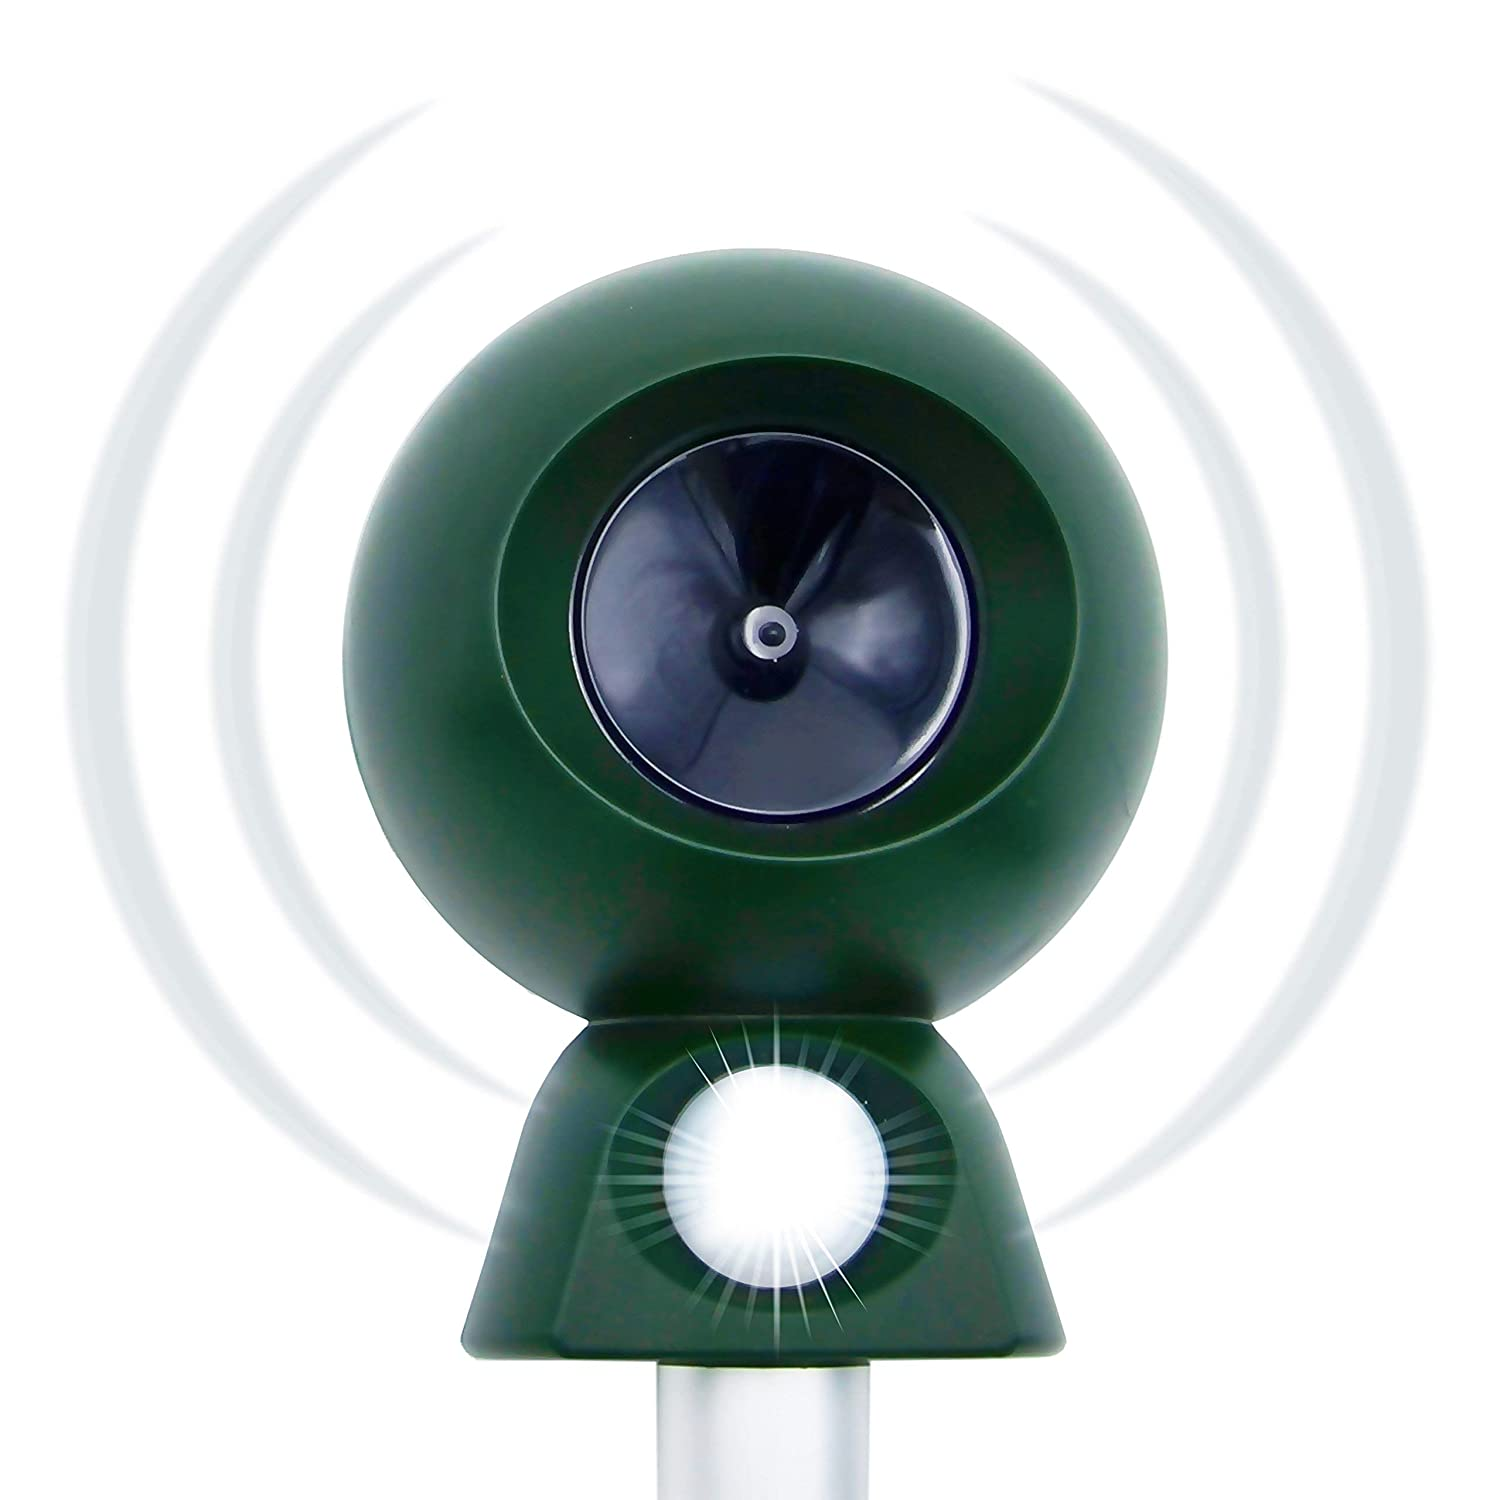 **NEW** Motion Activated Ultrasonic Cat repeller. Highly effective deterrent against Foxes, Rabbits, Dogs, Bats, Mice, Rats, Raccoons, Squirrels, Deer, Marters, etc. Ideal for Outdoors, Gardens, Garages or Cellars. Pest Tech